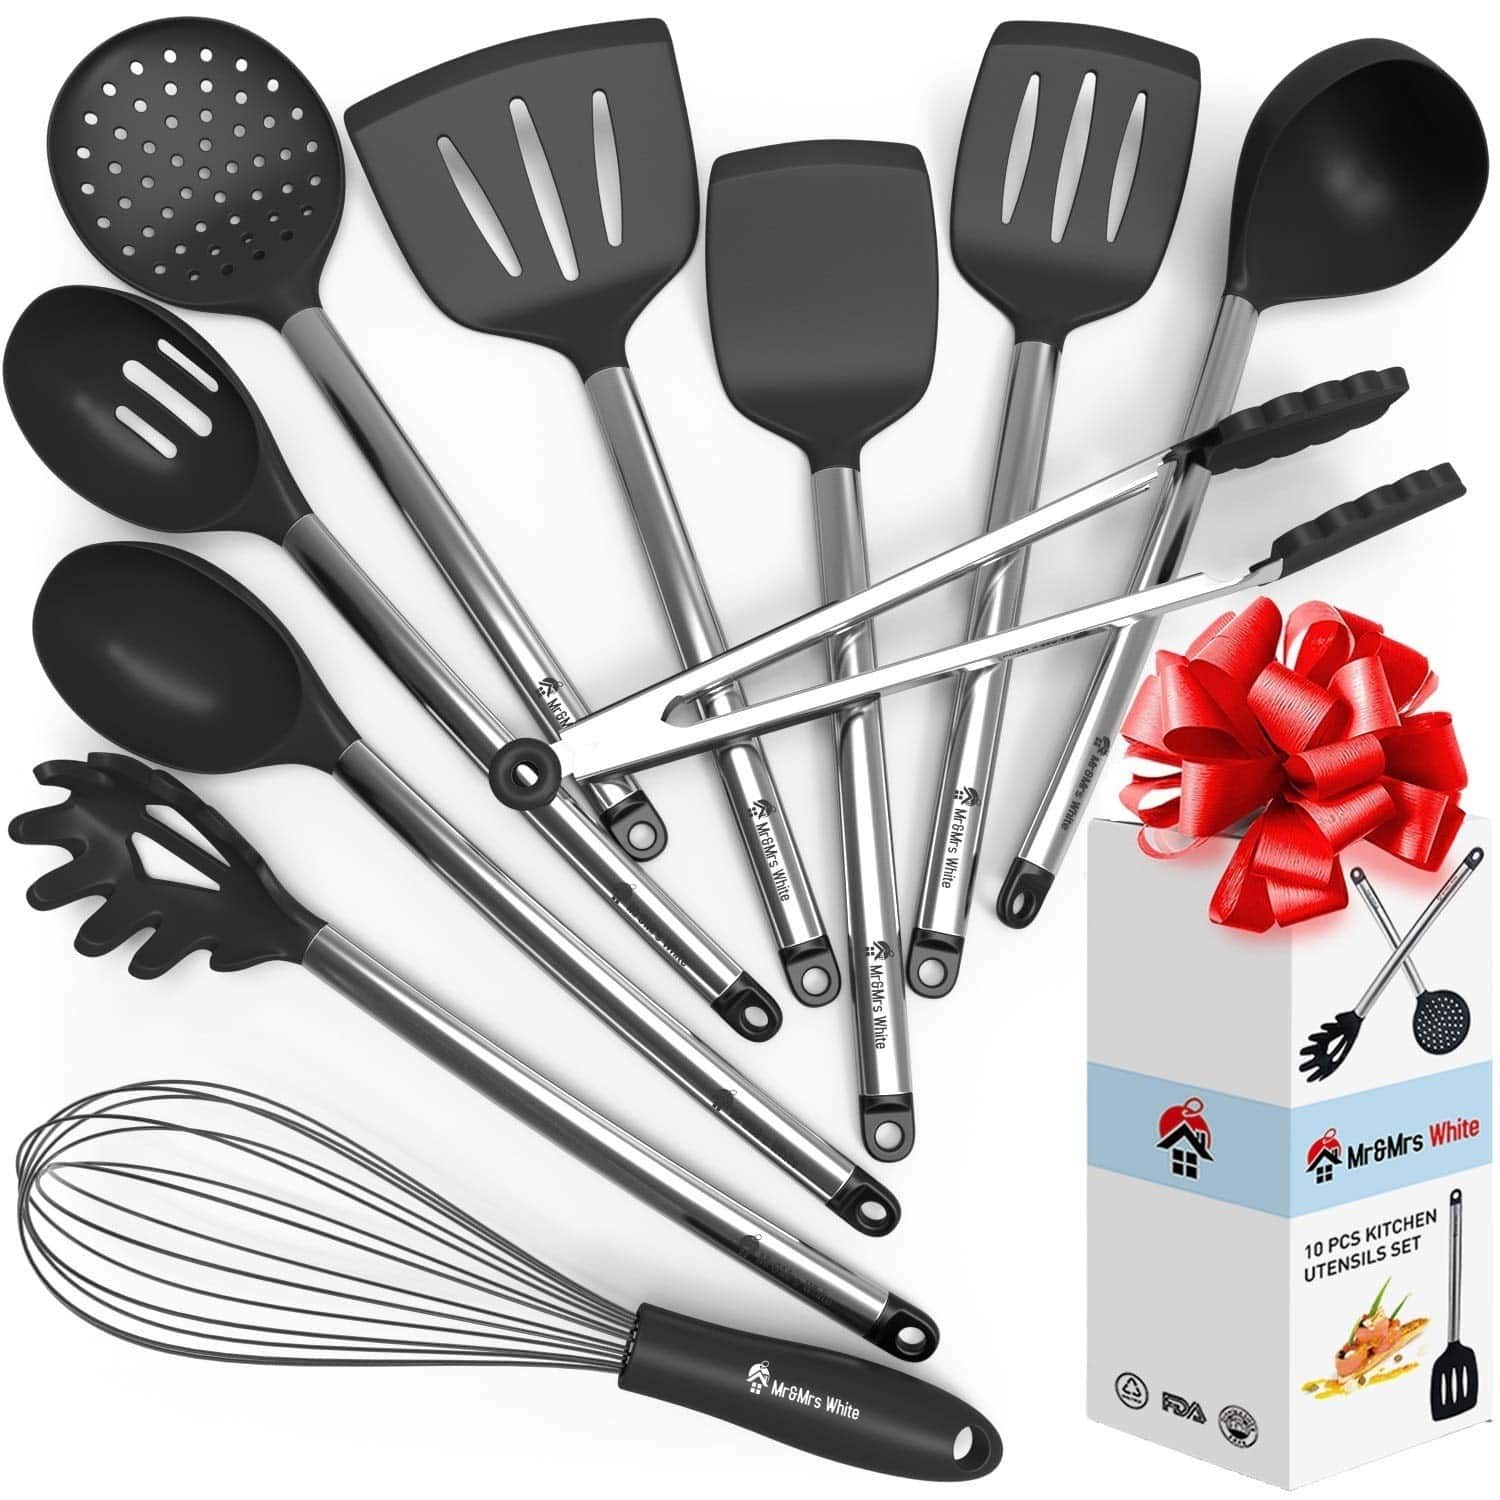 Mr & Mrs. White Cooking Utensil Set